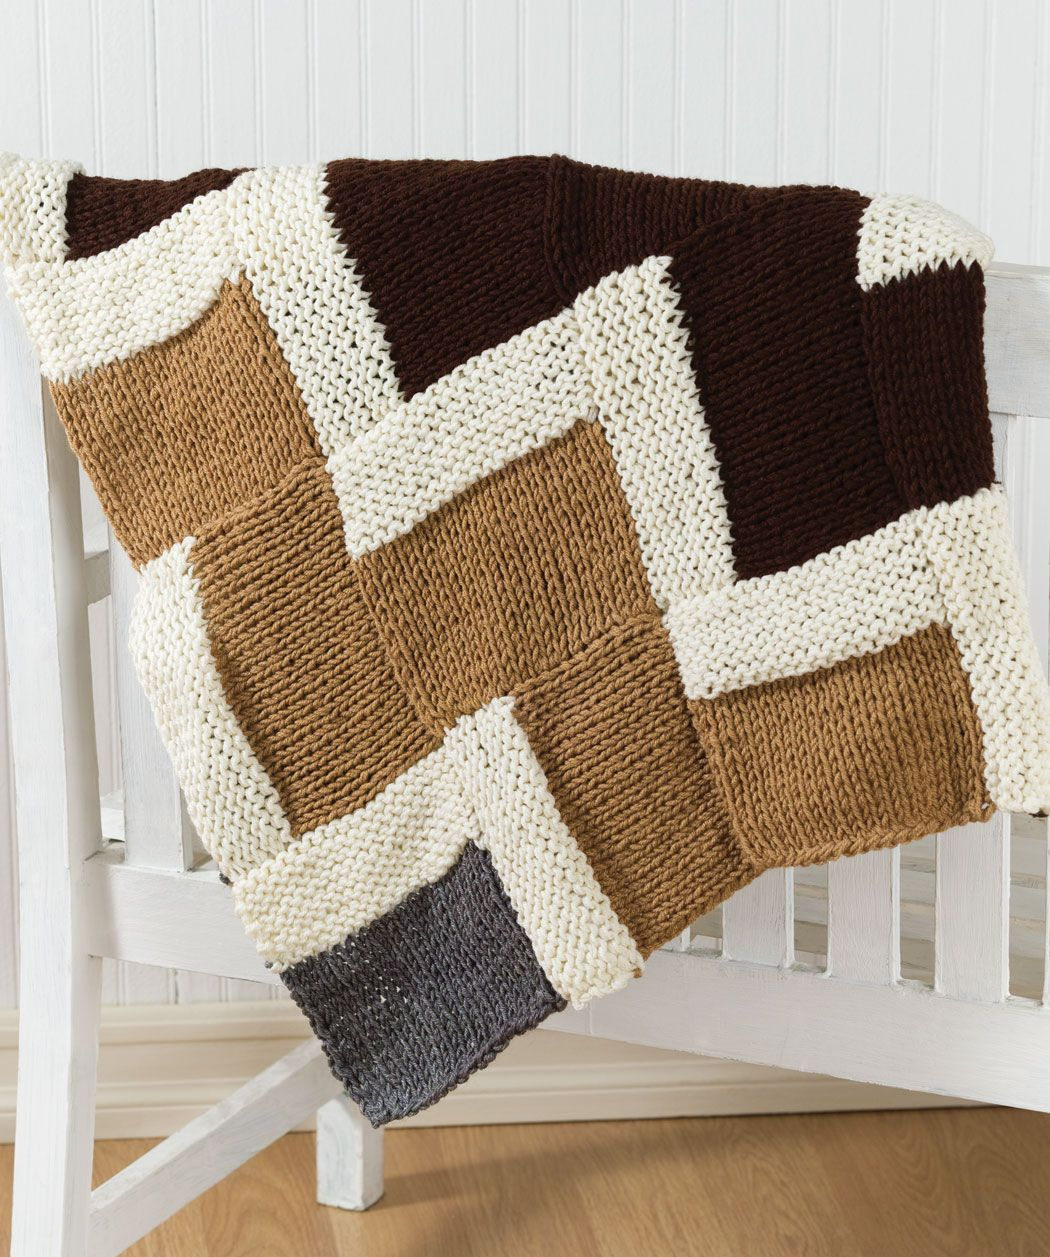 Easy Knit Zigzag Afghan | Knitted Blankets & Pillows | Pinterest ...